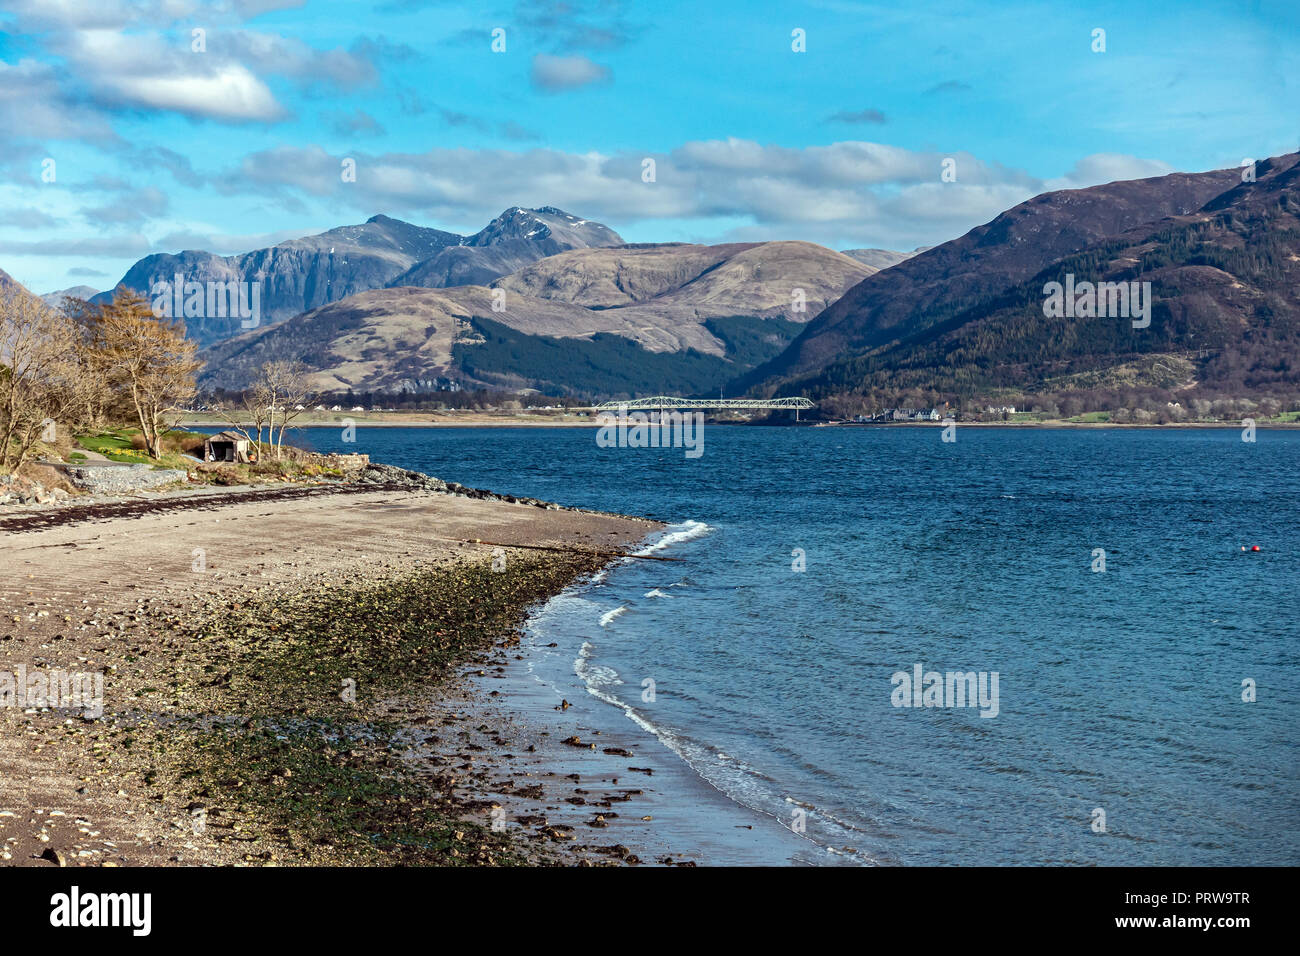 View towards Glencoe mountains from the north shore of Loch Leven at Onich Highland West Highlands Scotland UK - Stock Image